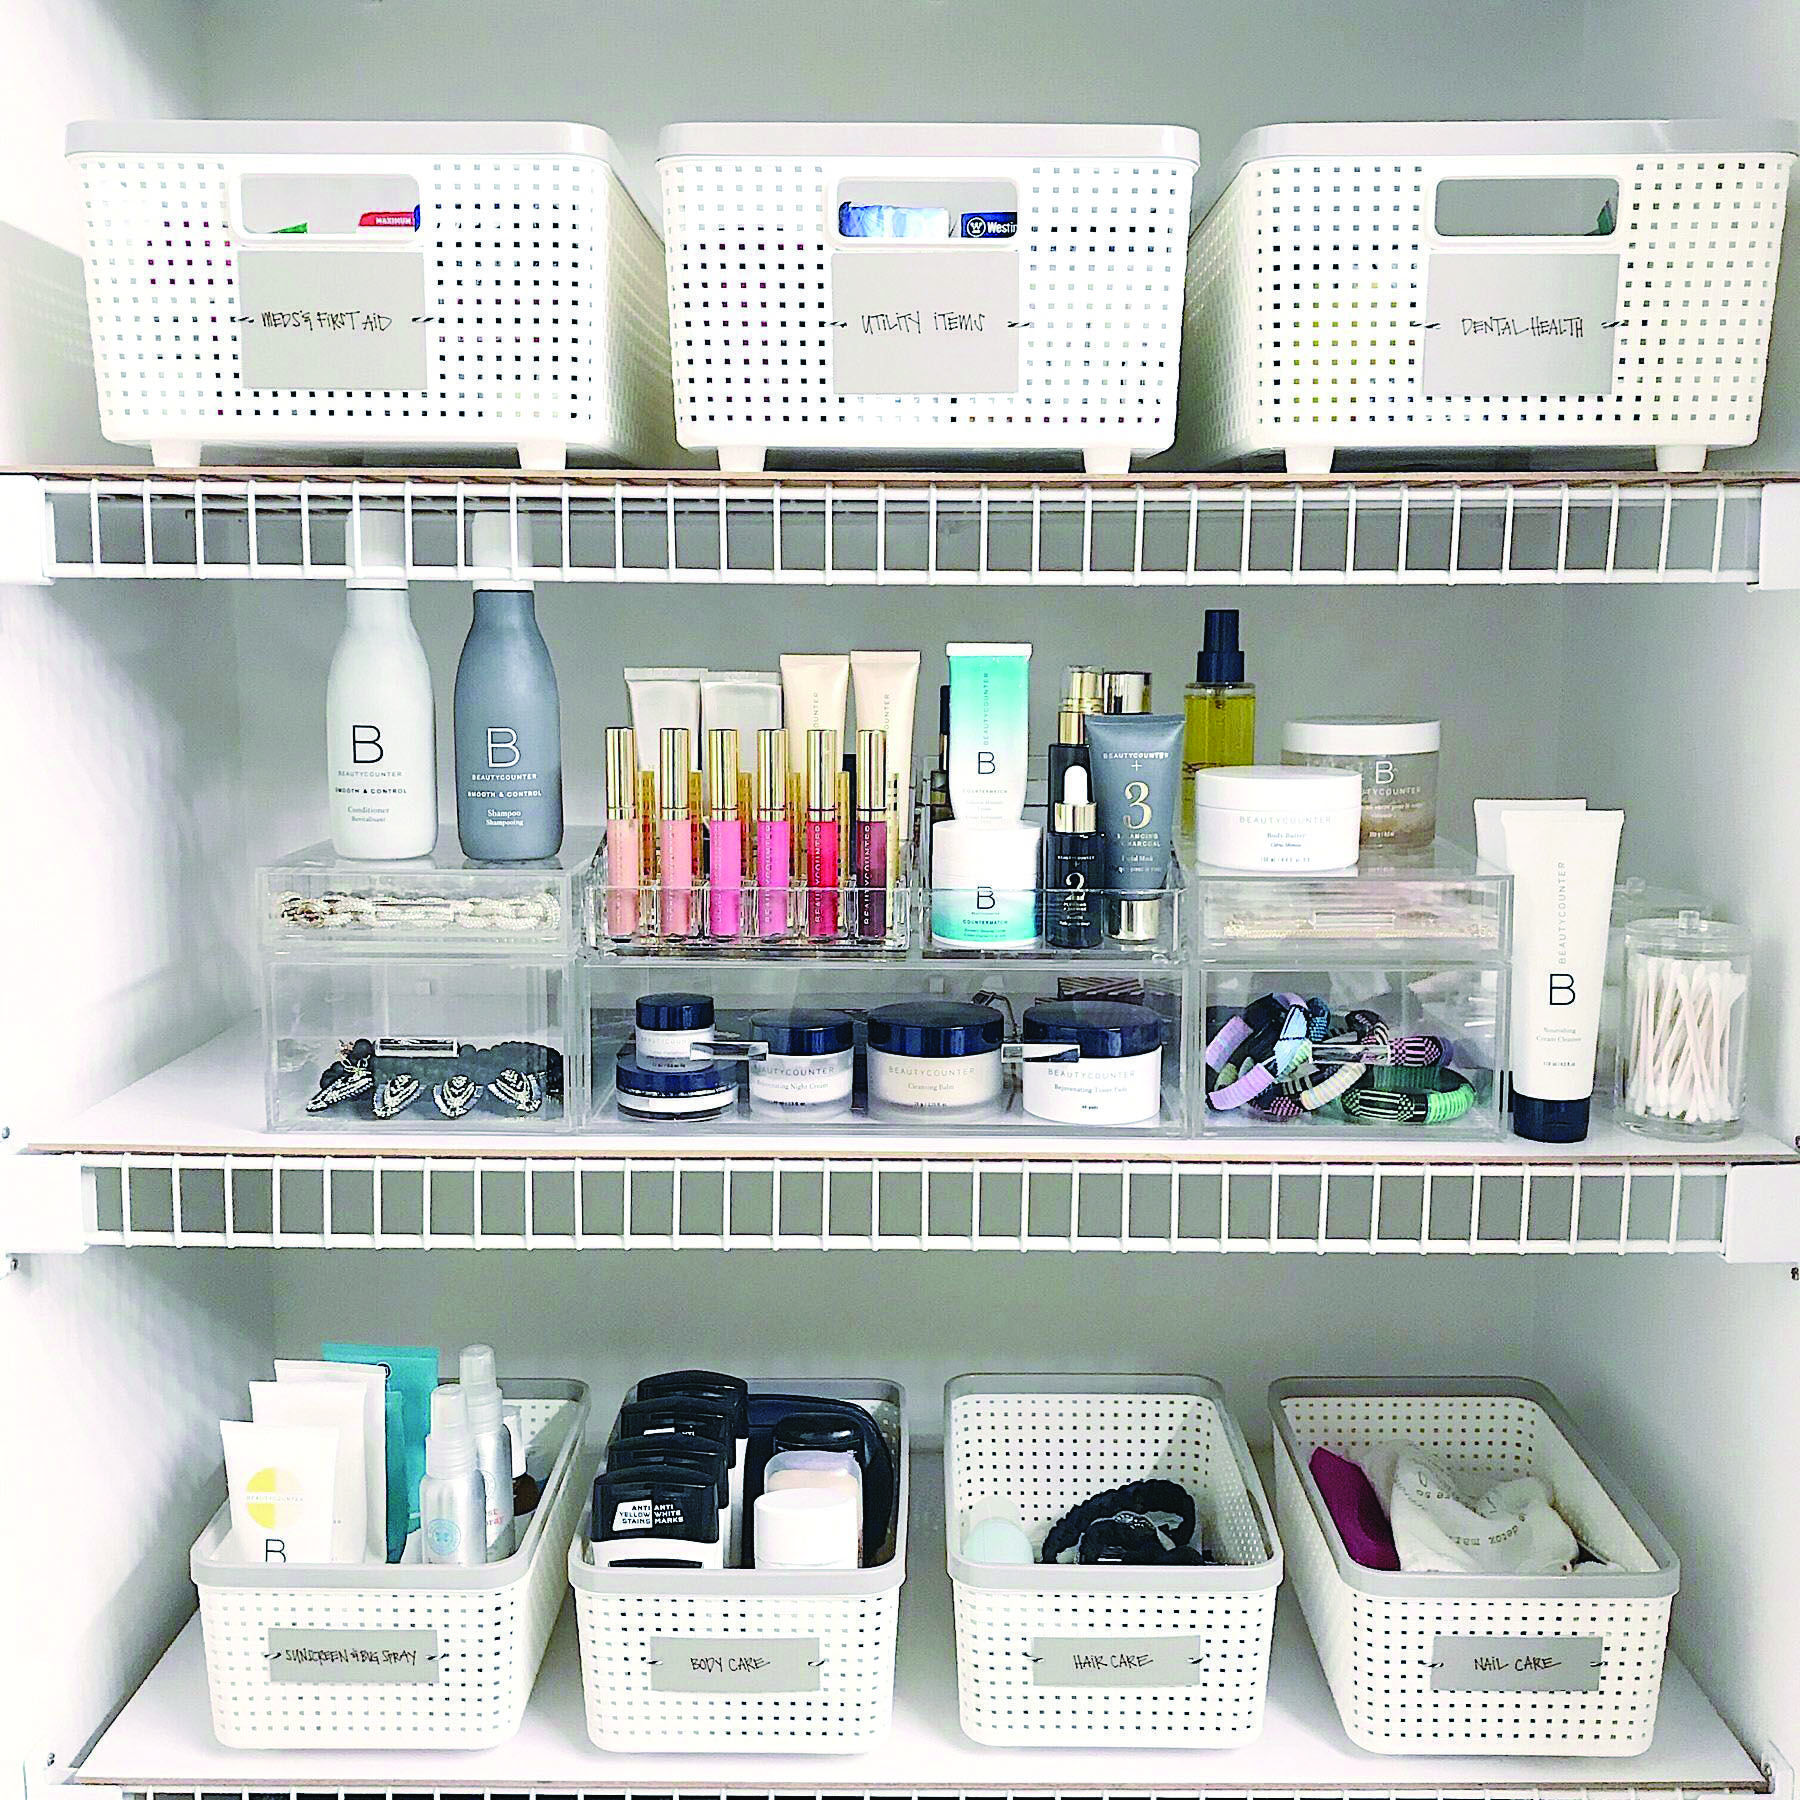 7 Cool Makeup Storage Ideas For Small Spaces Bathroom Organization Makeup Bathroom Closet Organization Bathroom Cabinet Organization